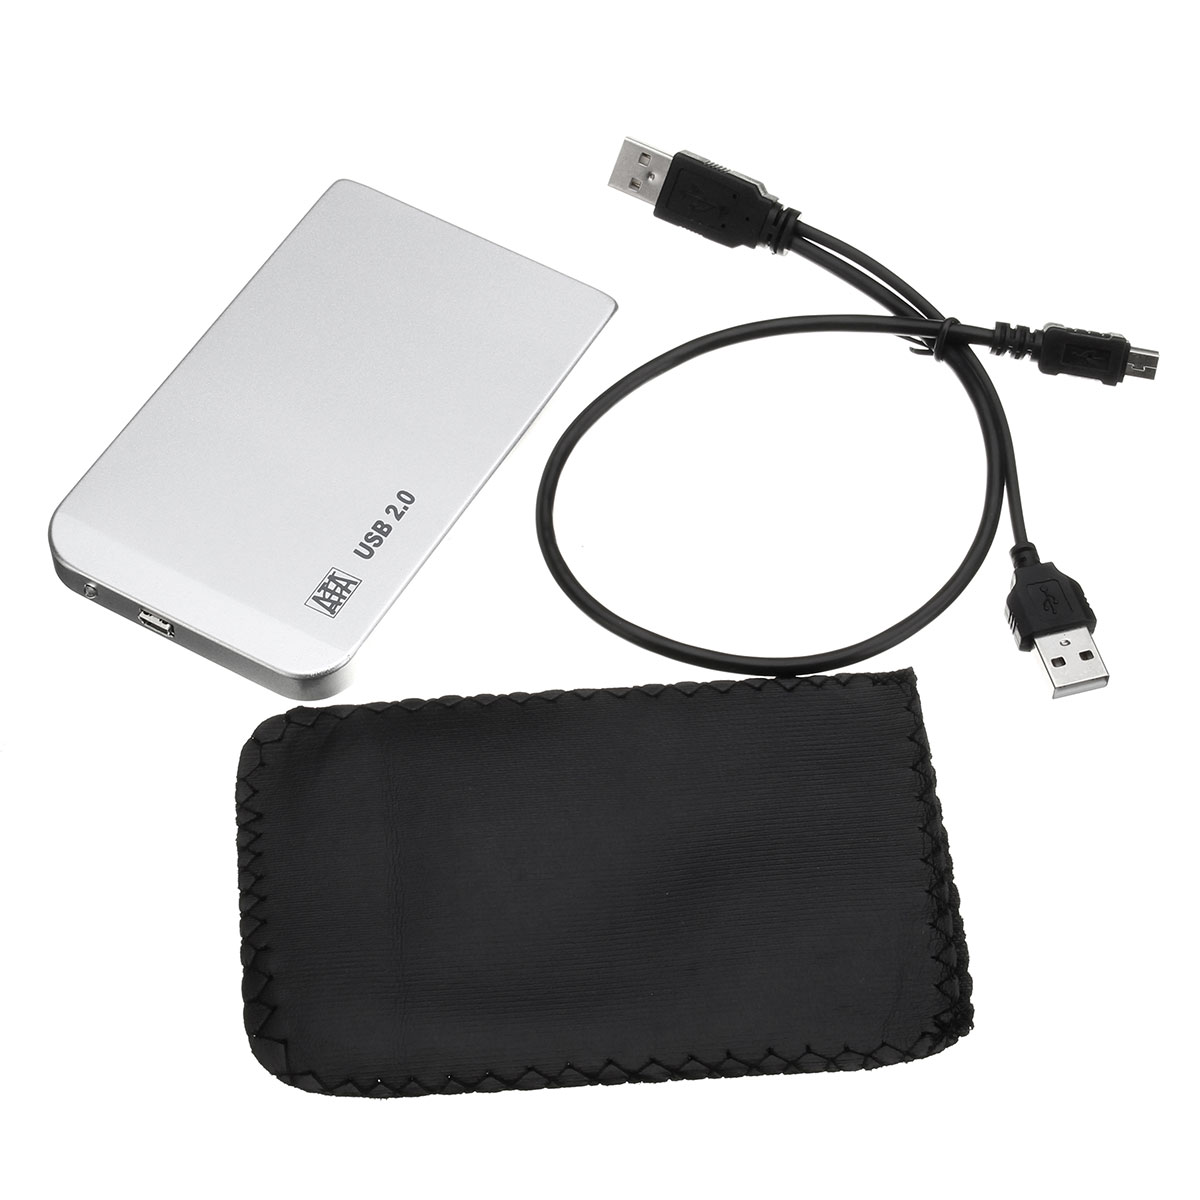 Silver USB 2.0 SATA HDD Enclosure 2.5'' IDE Hard Drive Disk HDD External Case Enclosure with USB Cable Aluminum(China (Mainland))